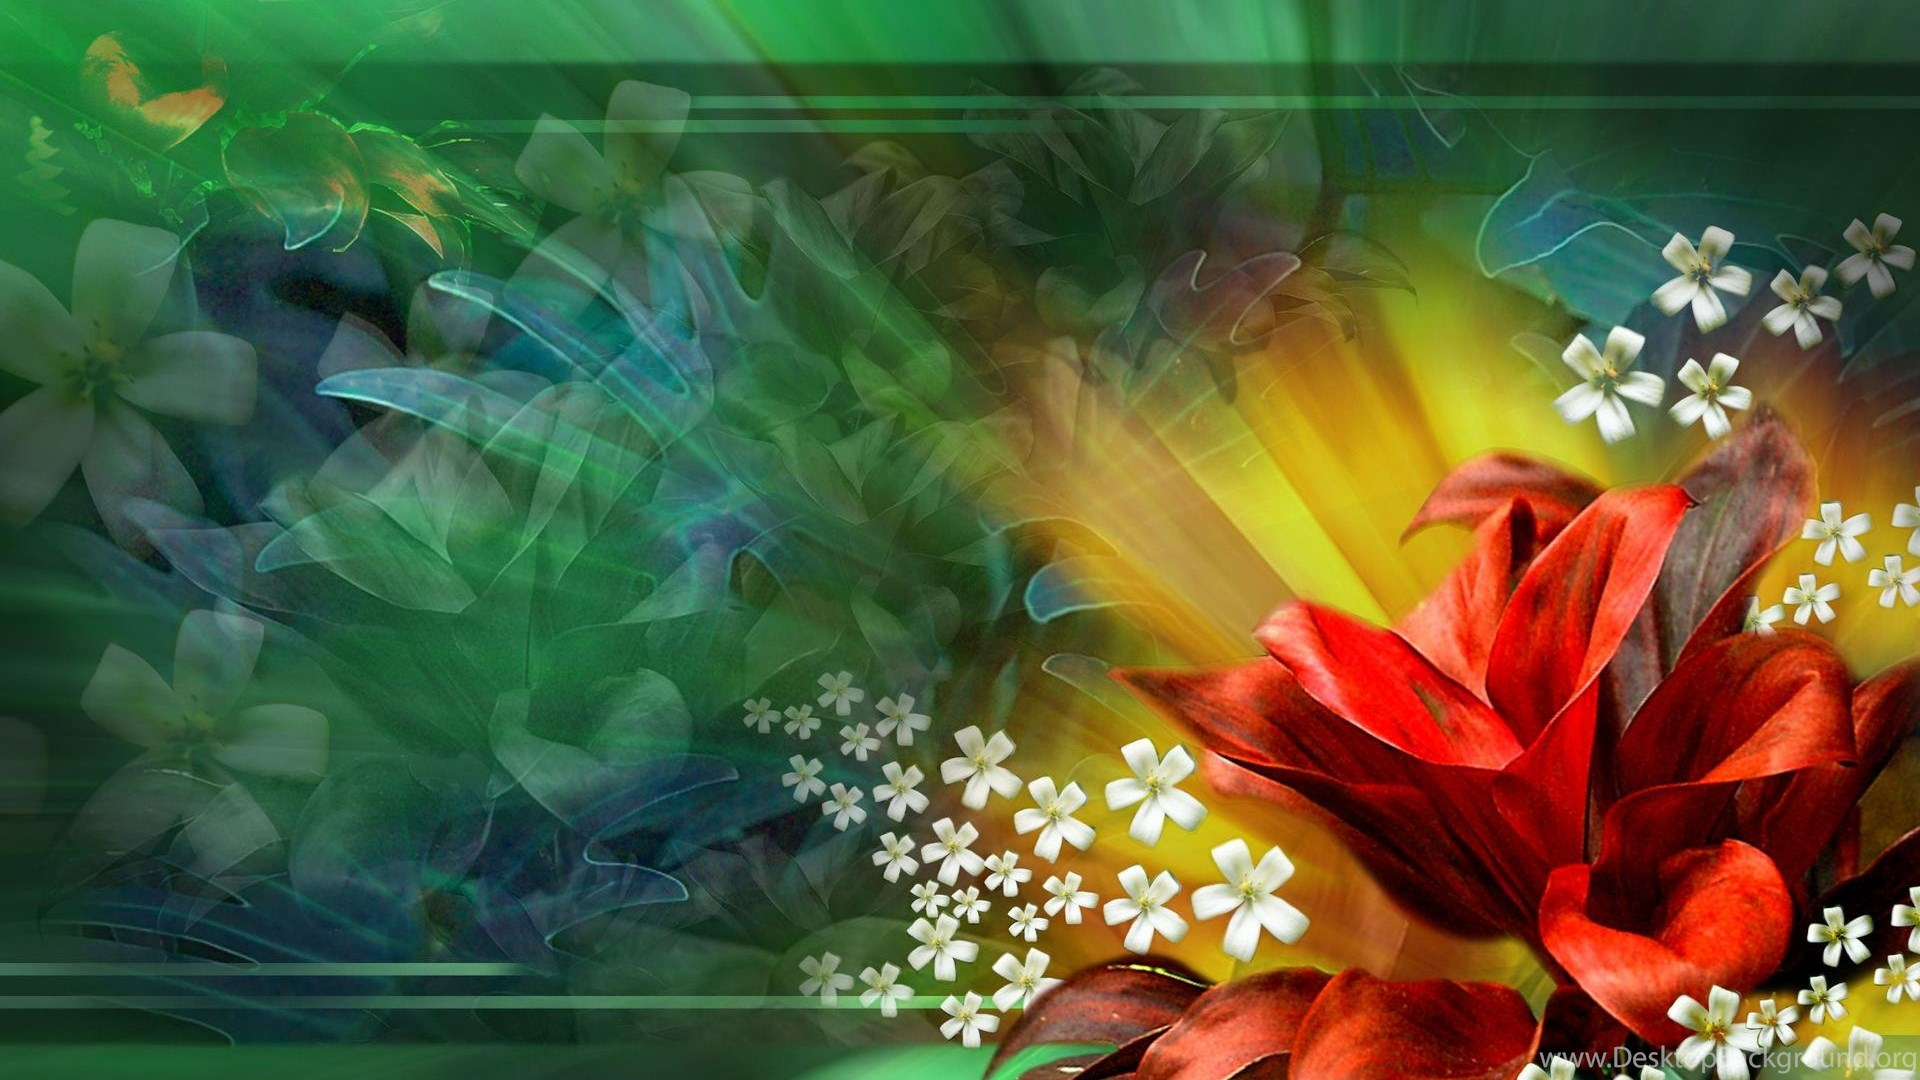 Red Flower Abstract Floral Single Green 1920x1200 Hd